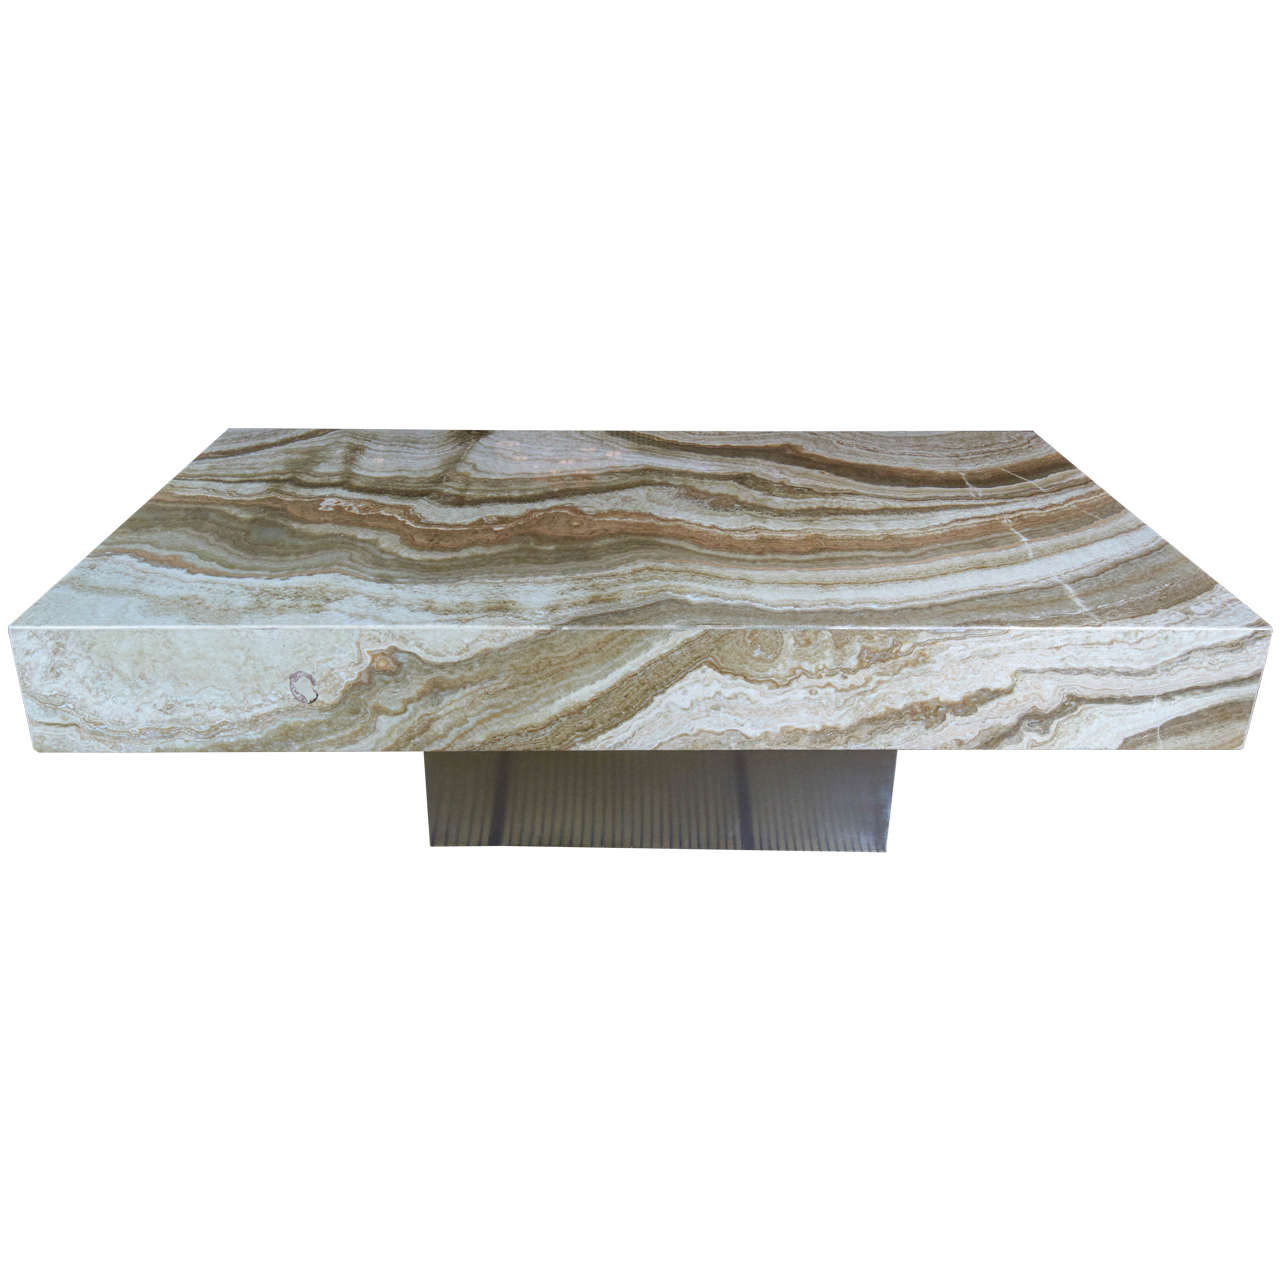 1970s Italian Onyx Coffee Table at 1stdibs